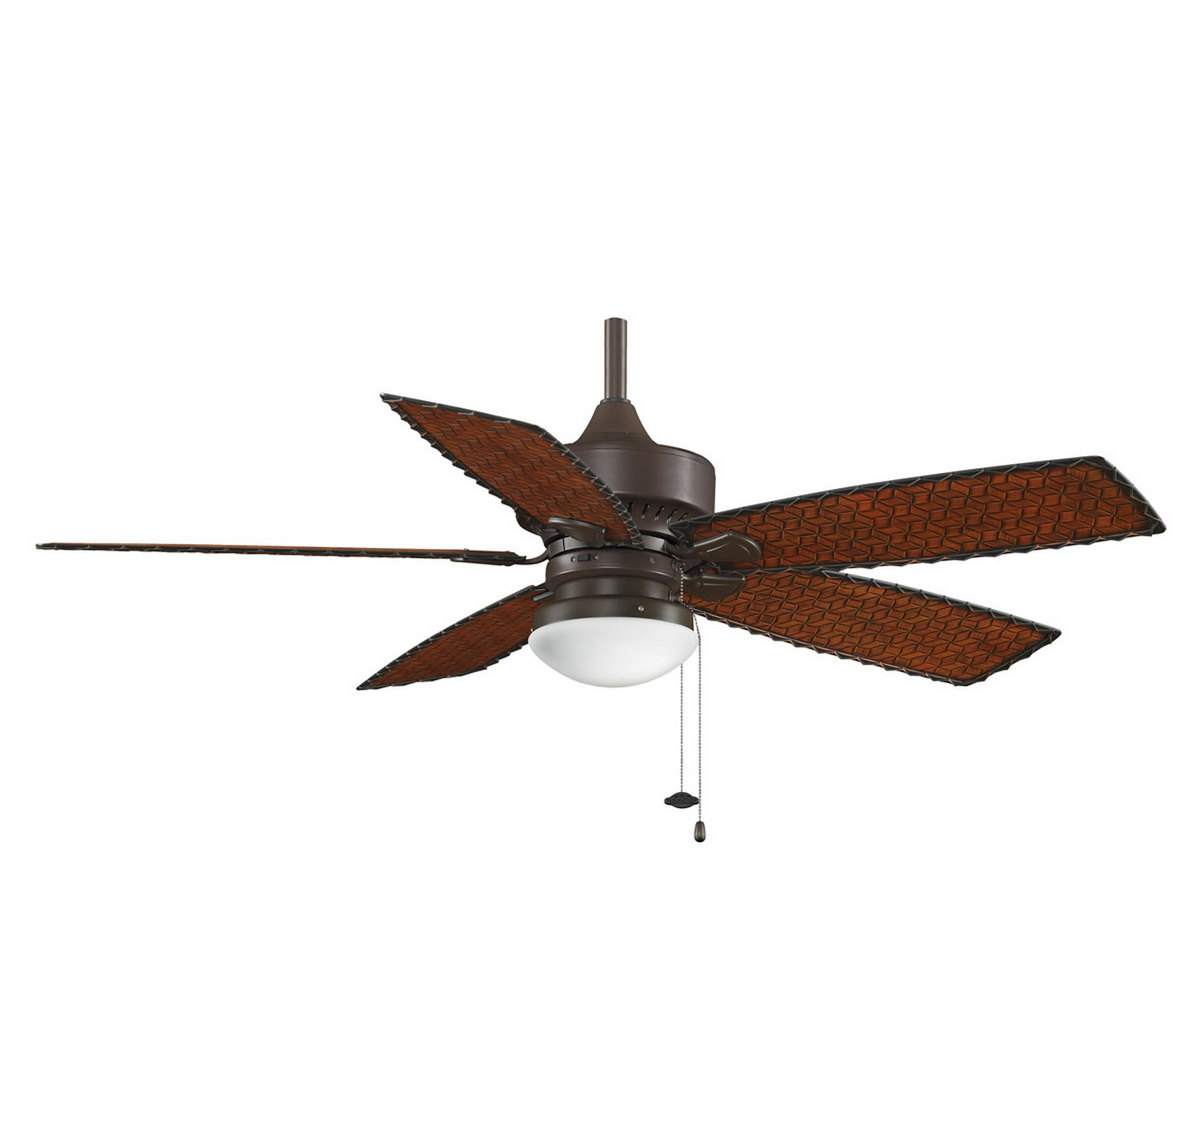 Fanimation 52 Cancun Outdoor Ceiling Fan in Bronze w/Woven Bamboo Blades